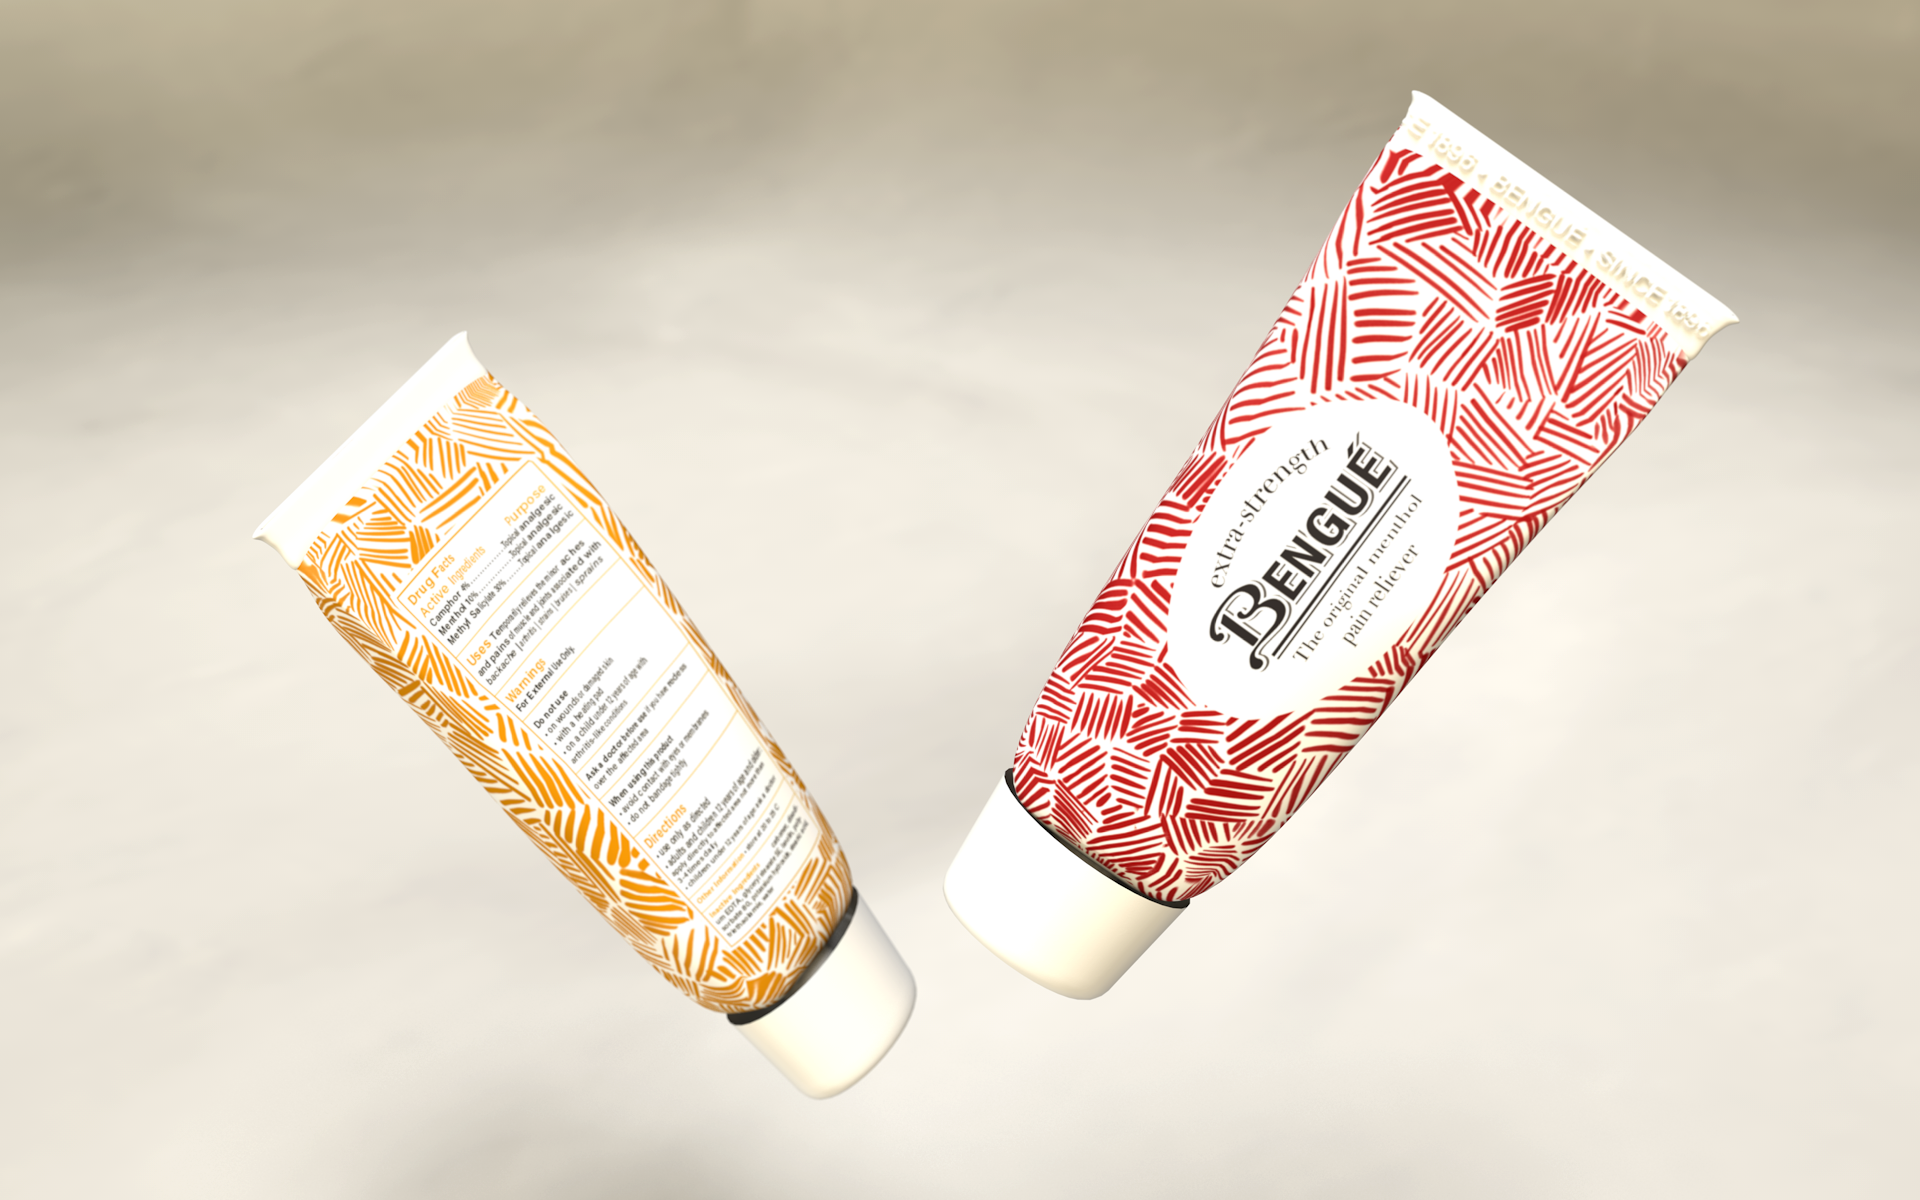 New tubes features a gestural, cross-hatched pattern for a hand-made feel. Rendering by Zak Vono.